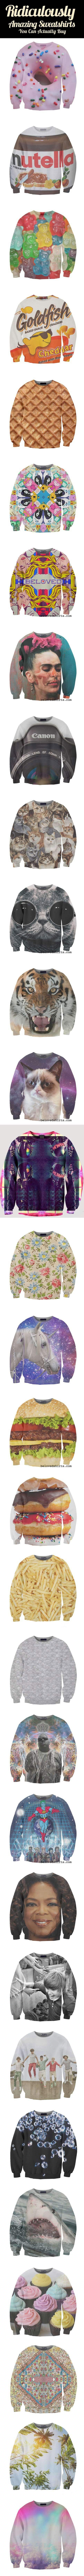 Awesome sweatshirts!  Score! http://belovedshirts.com/collections/beloved-sweatshirts